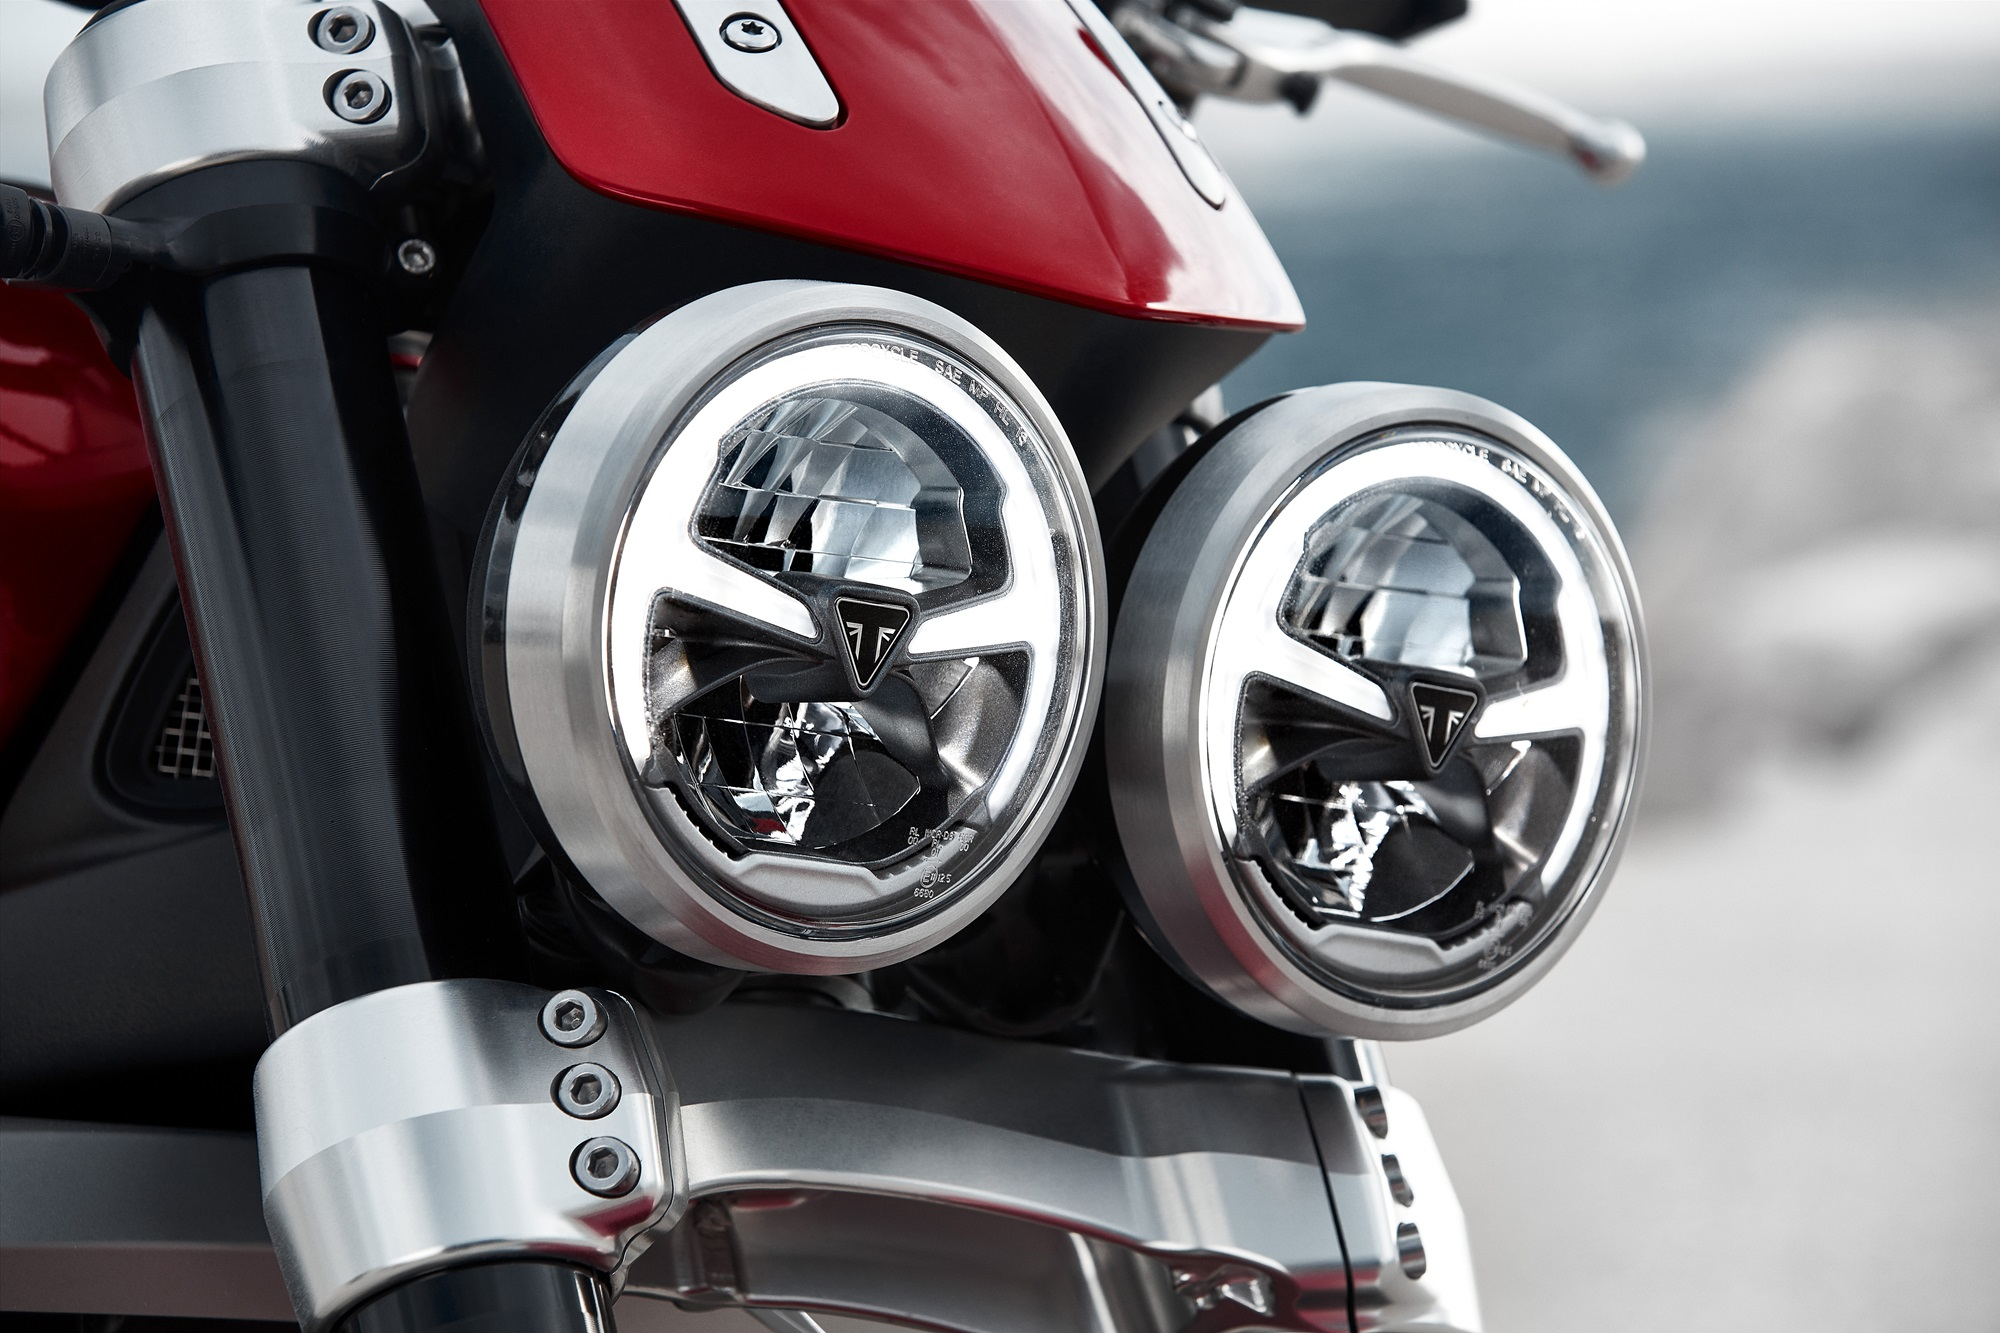 2019 Triumph Rocket 3 R and GT headlight